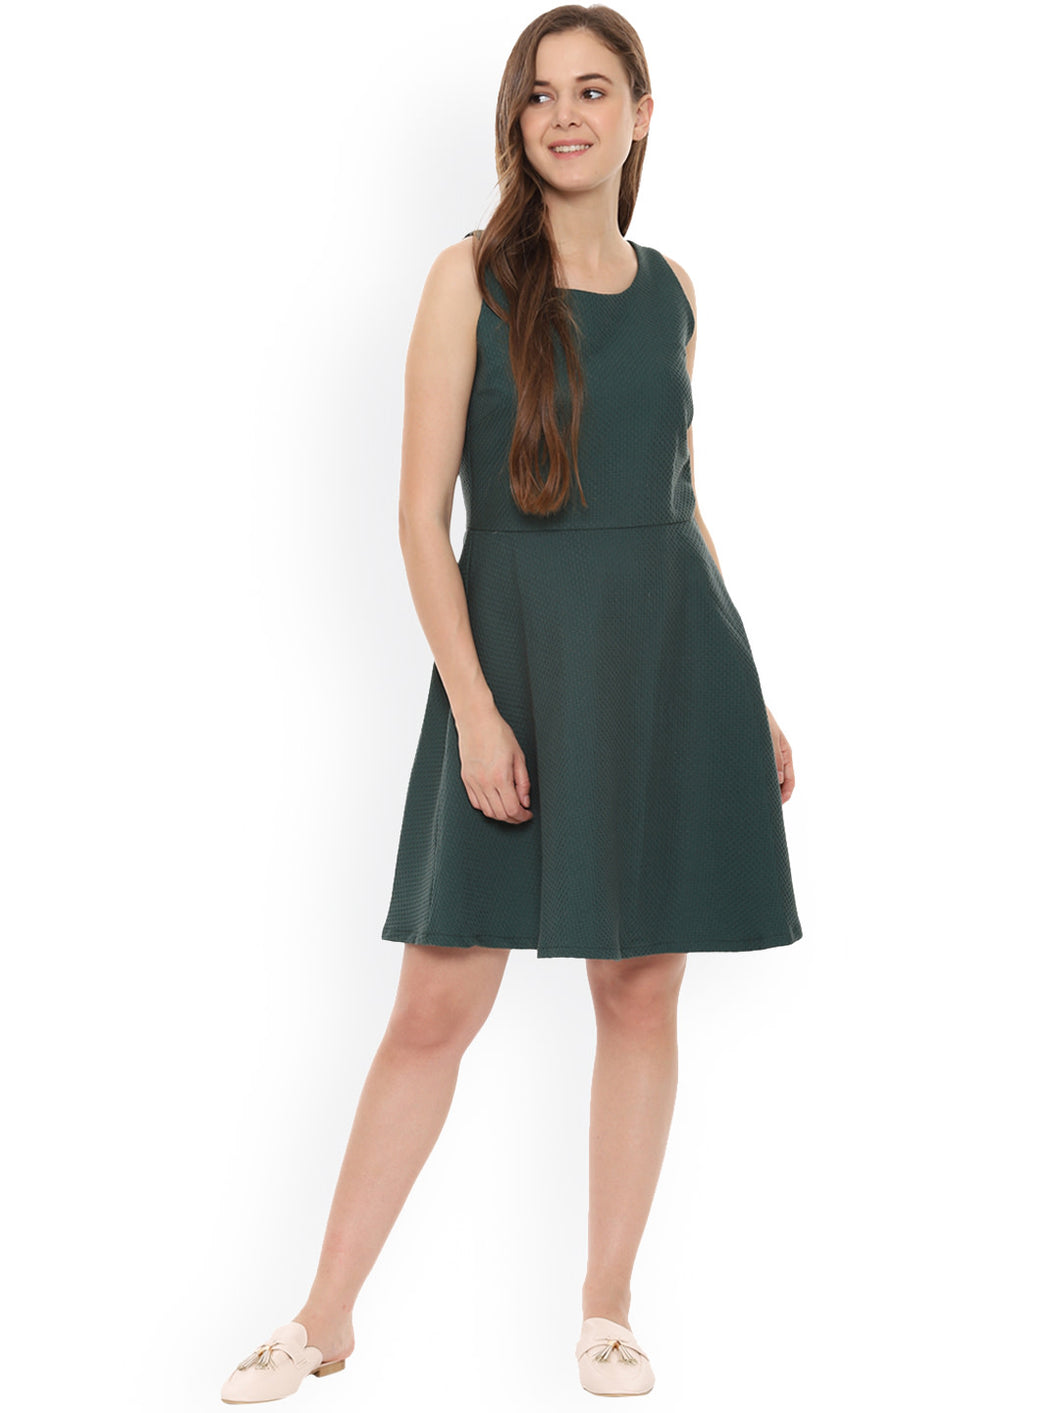 Queen ellie  Women Olive Green Self Design Fit and Flare Dress